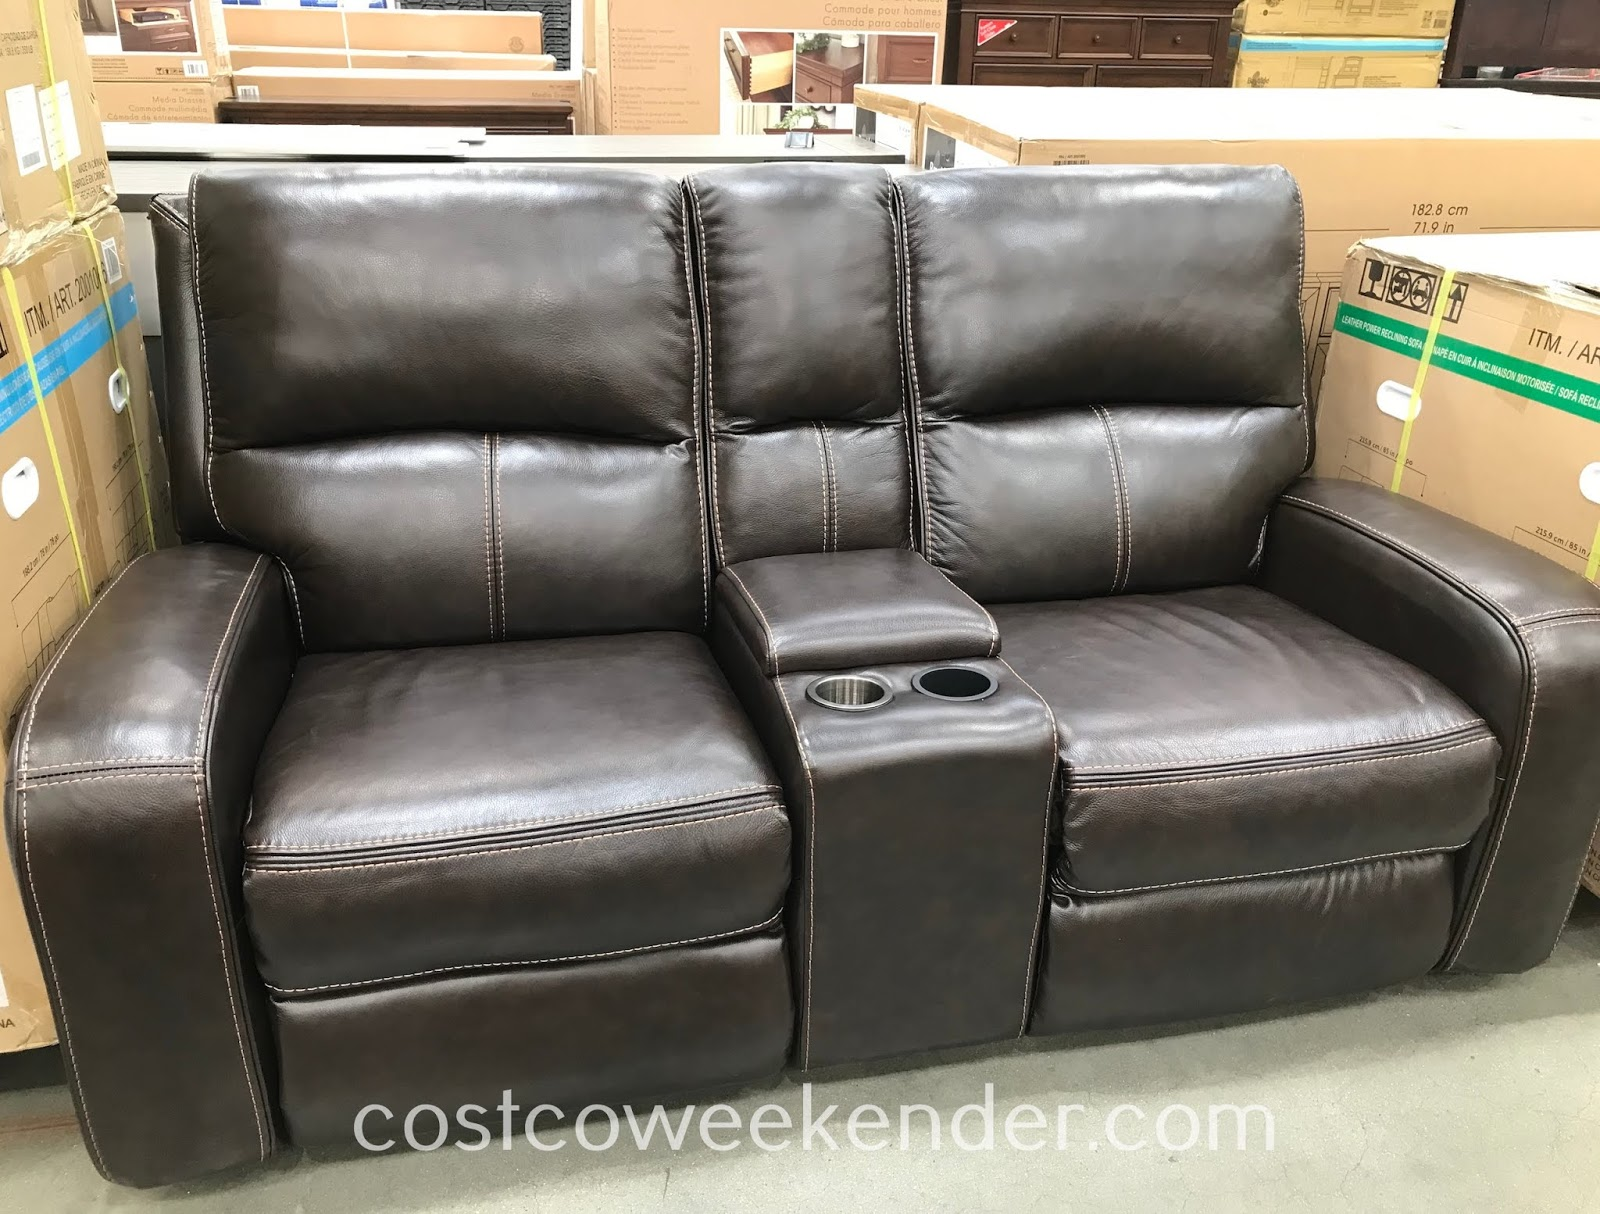 Kick back to watch a movie in the comfort of the Sawyer Leather Power Reclining Loveseat